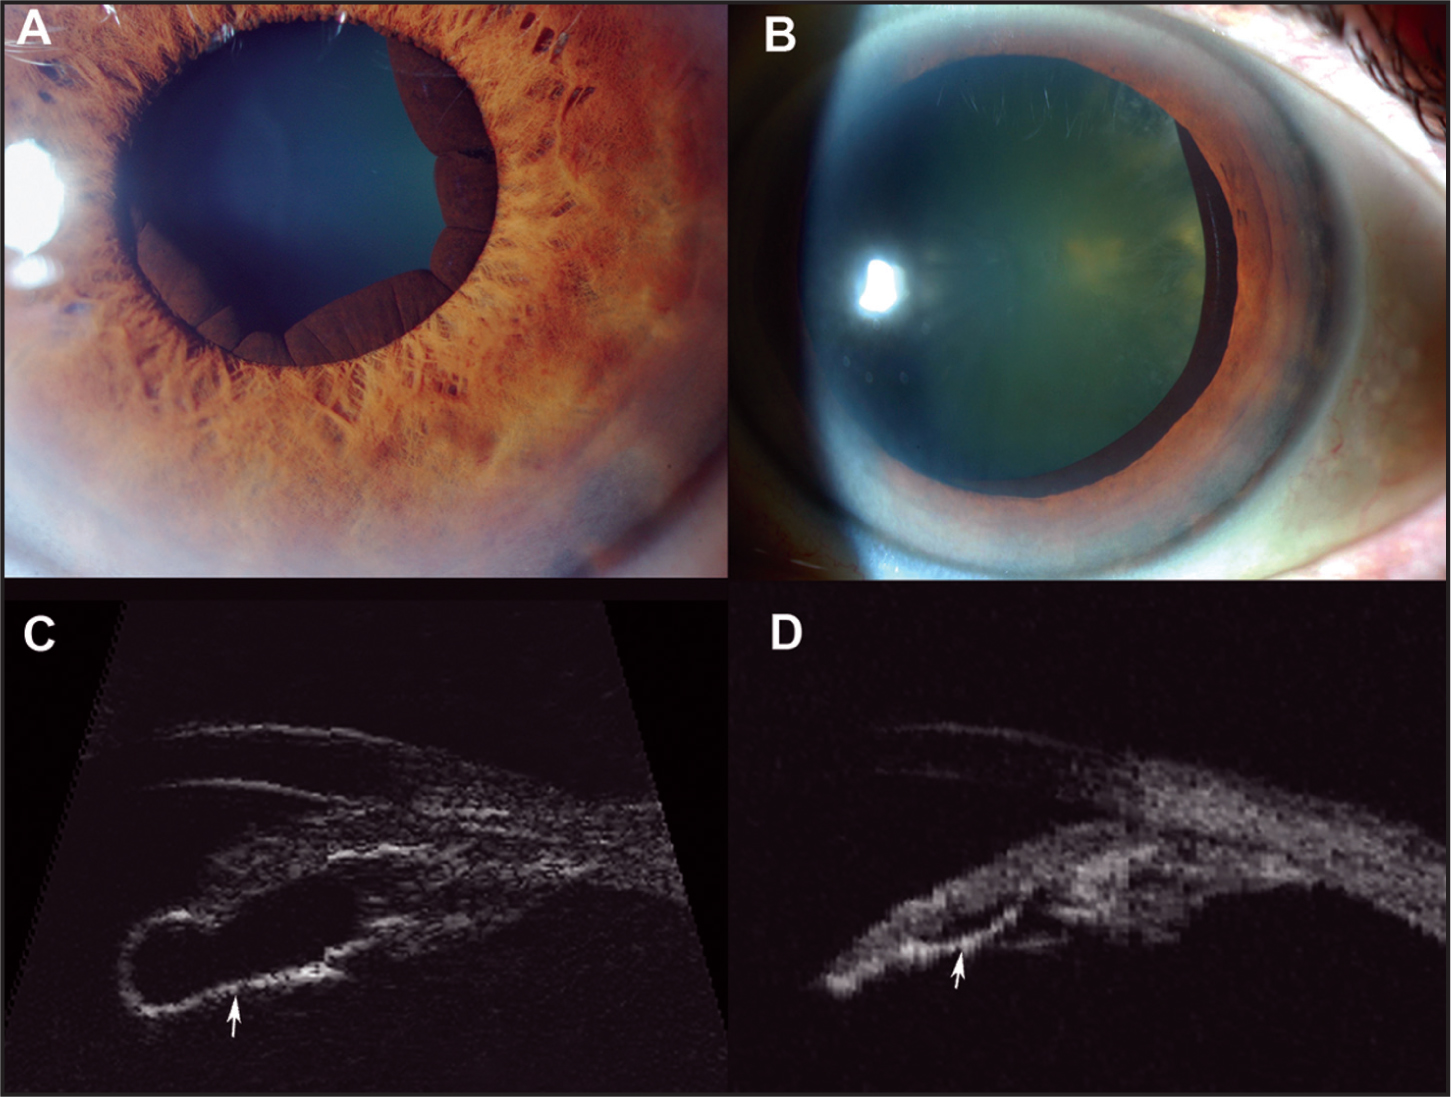 Case 2. Slit-Lamp Photography of Iris Pigment Epithelial Cyst Before (A) and After (B) Laser Cystotomy. Regressed Cyst was Seen only After Pupillary Dilation. High-Frequency Ultrasound in Longitudinal Section (C) Before (at 20 MHz) and (D) After (at 35 MHz) Laser Treatment. Arrow Denotes Regression of Cyst.